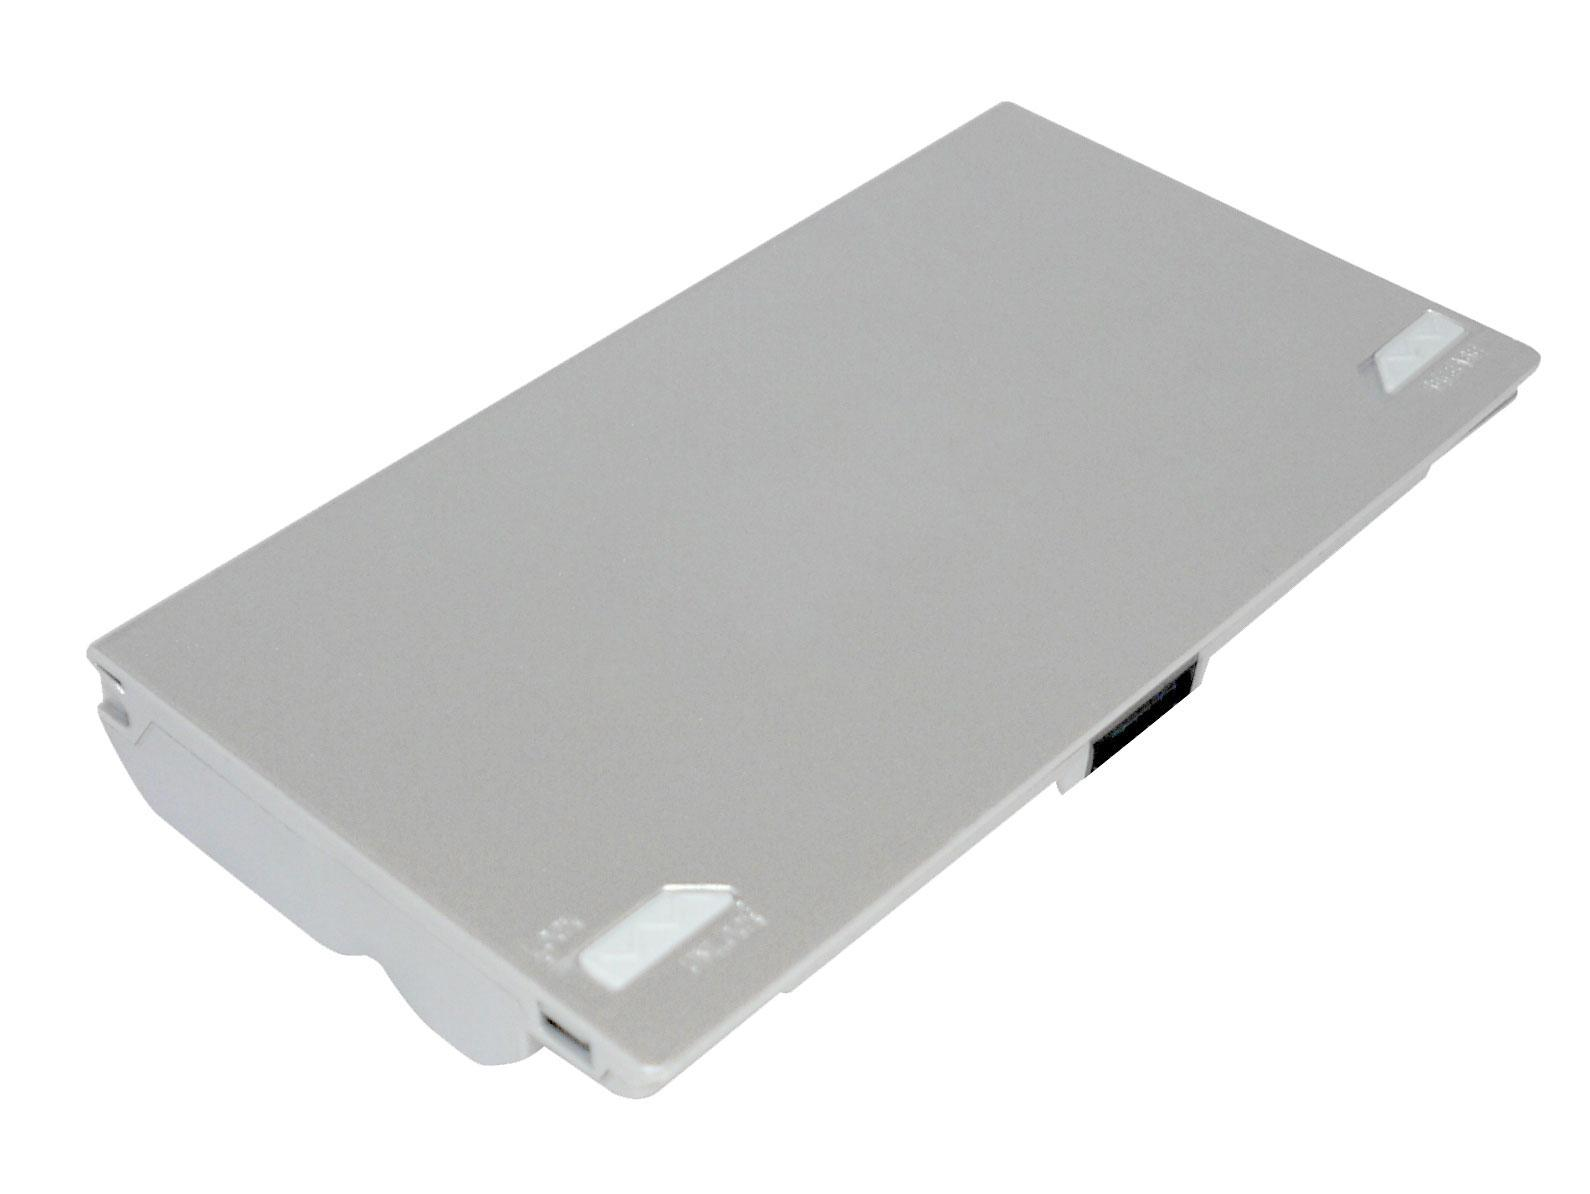 Replacement Sony VAIO VGN-FZ37G Battery